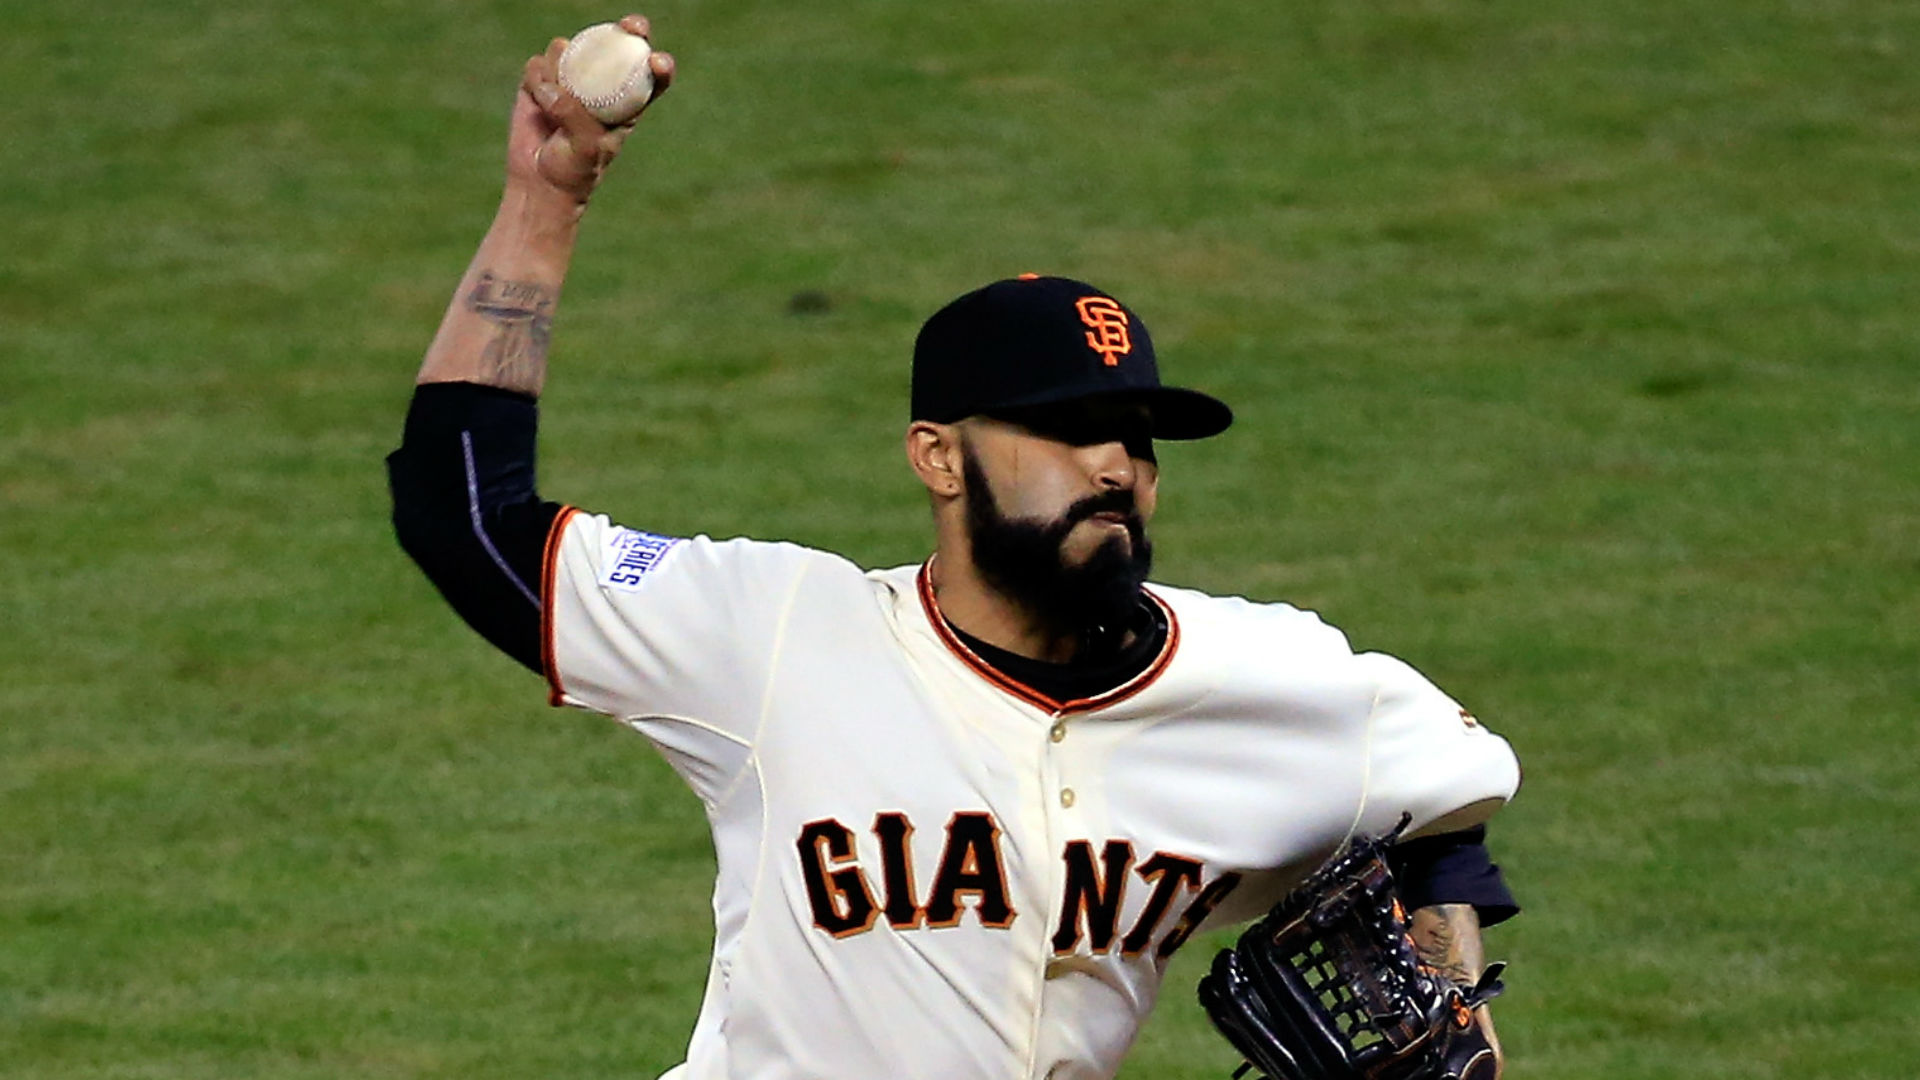 sergio-romo-121714-getty-ftr-us.jpg